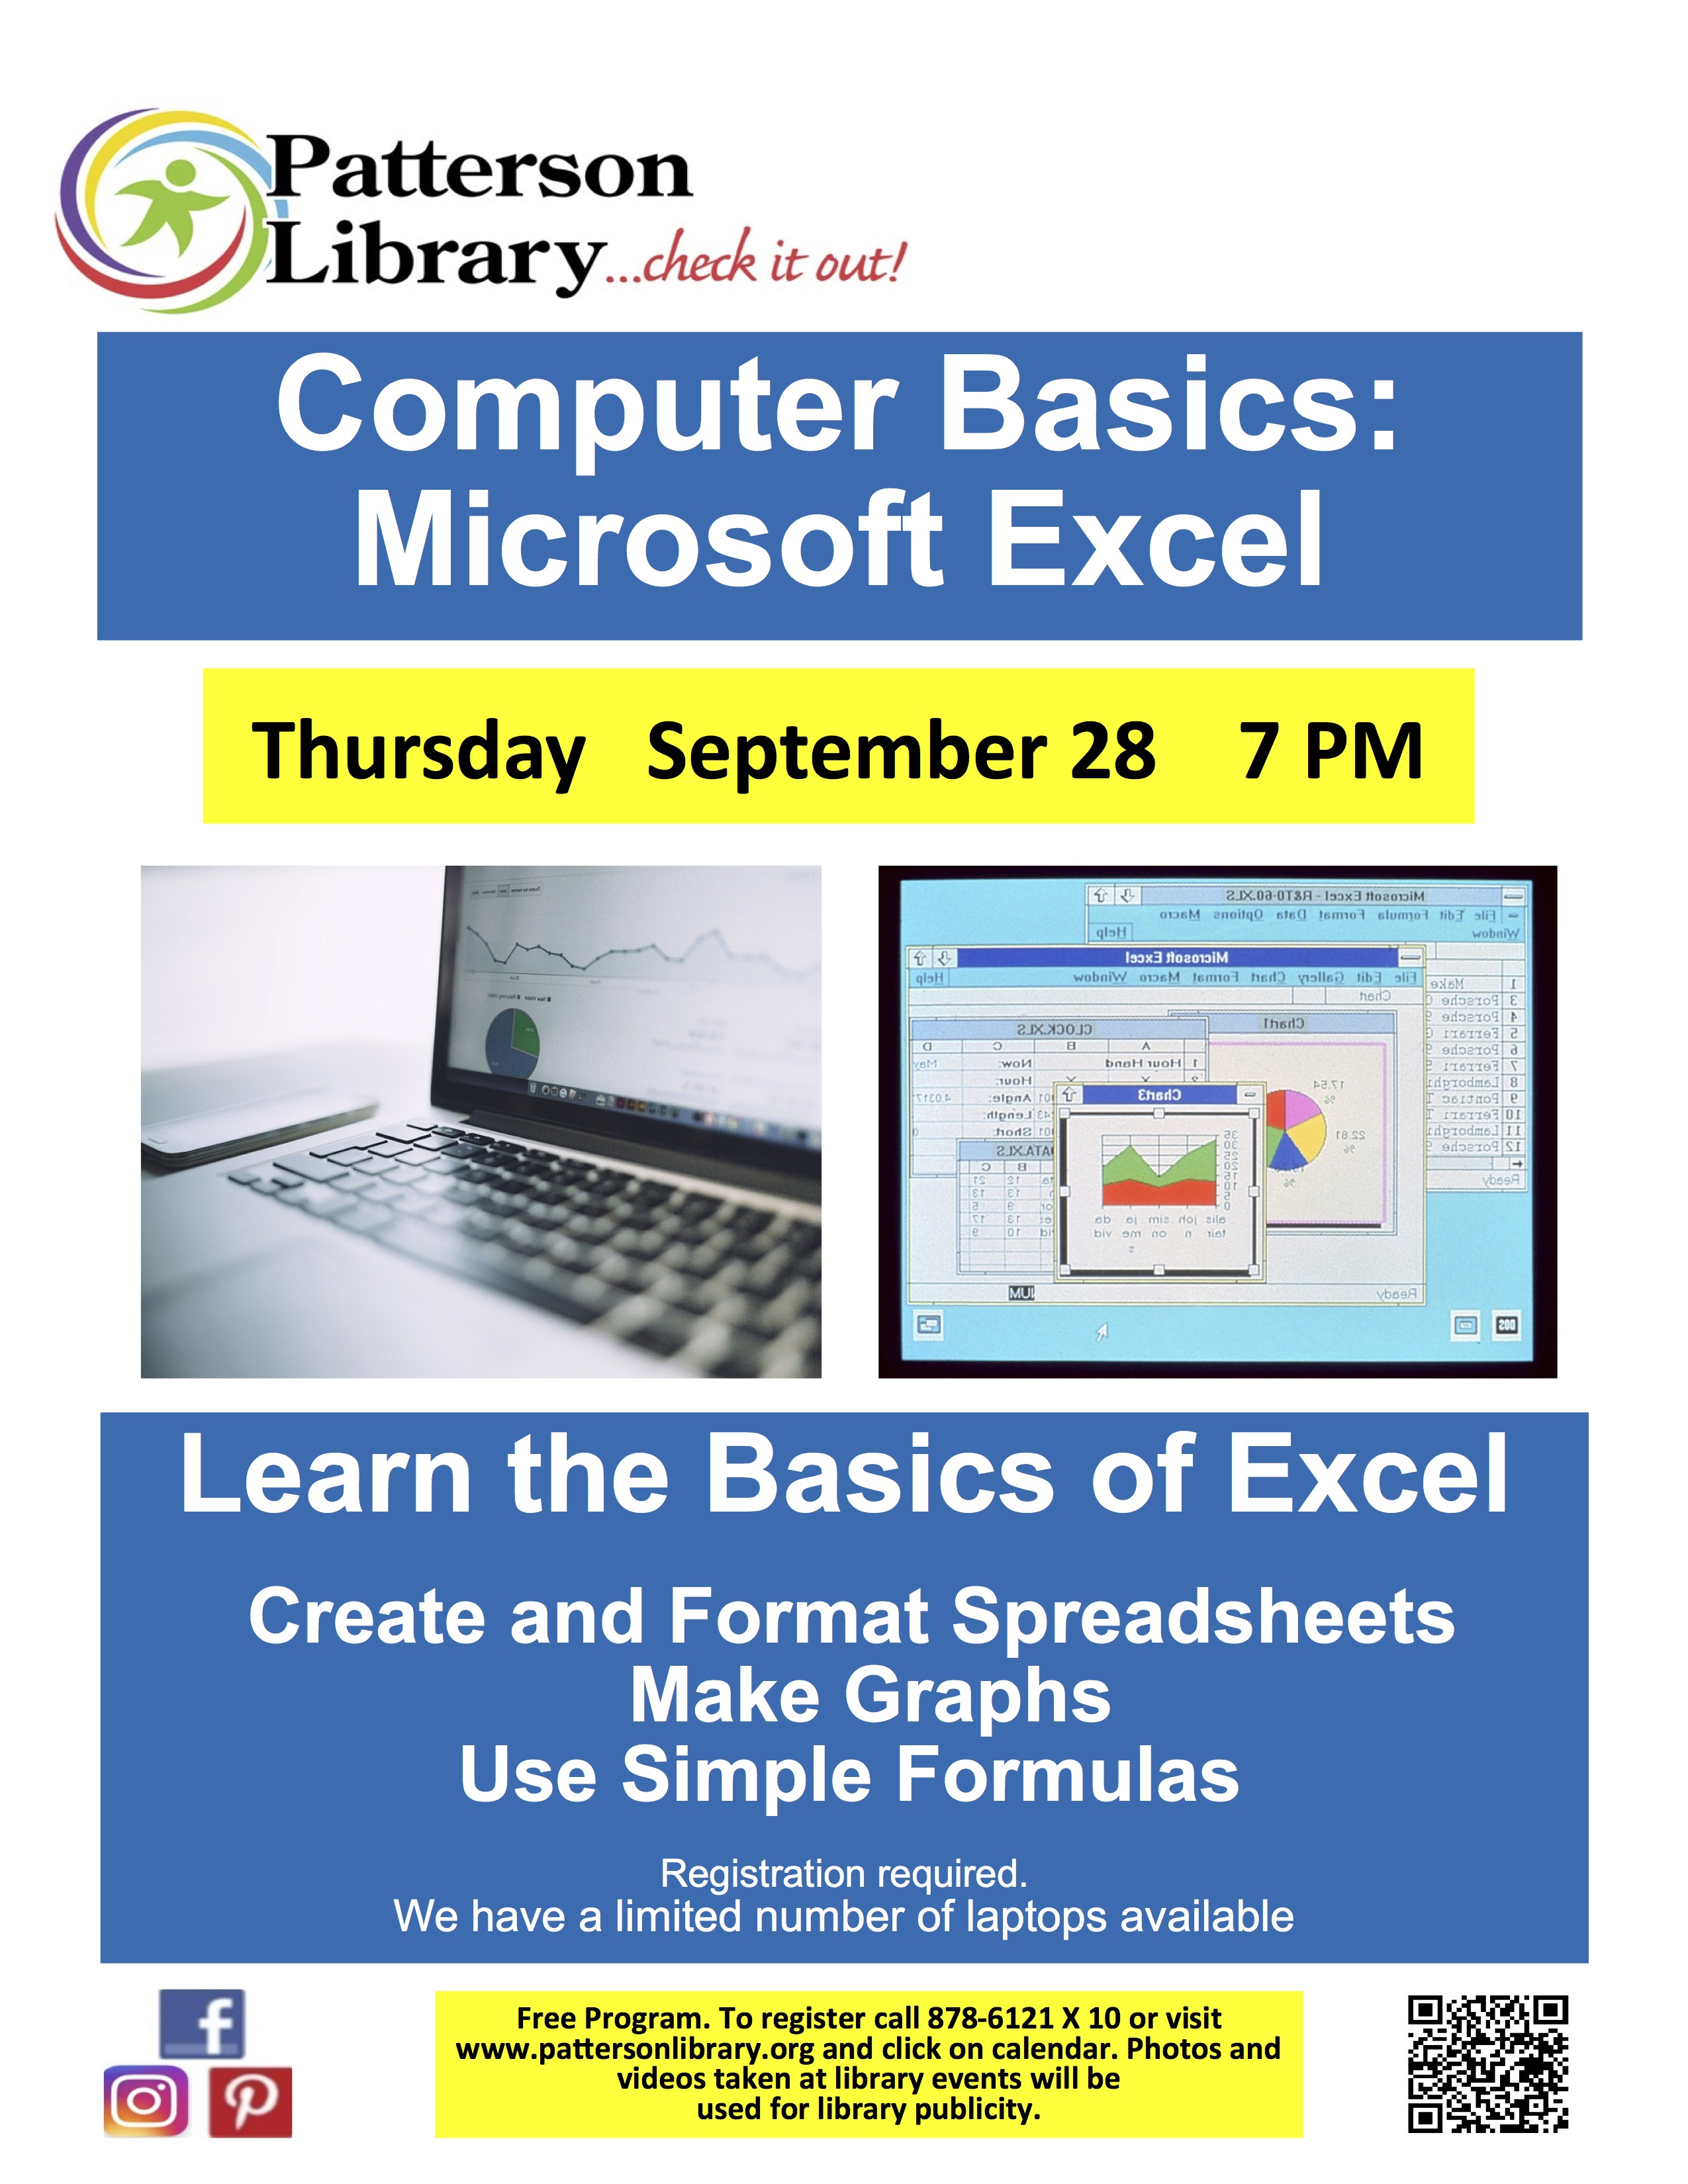 Learn the Basics of Excel at Patterson Library on Sept 28